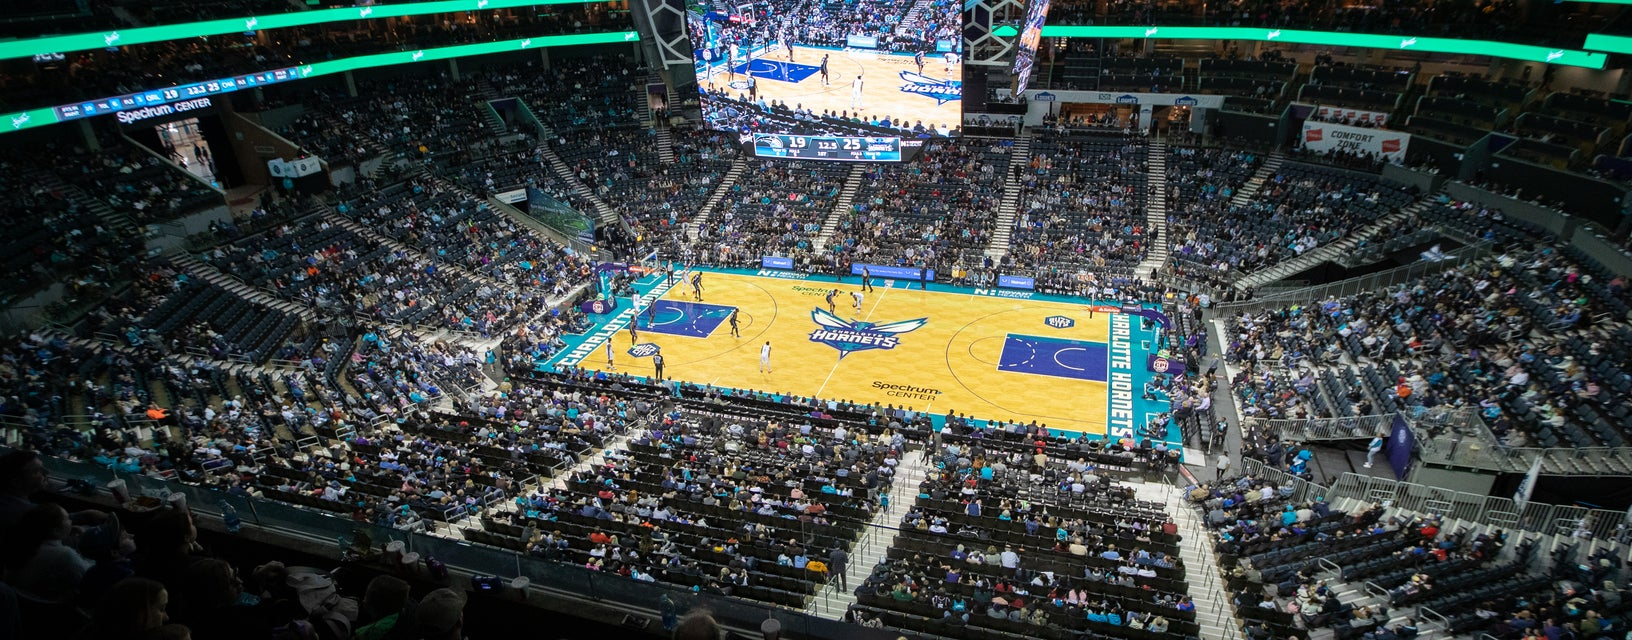 Seat view from Upper Level Center Court